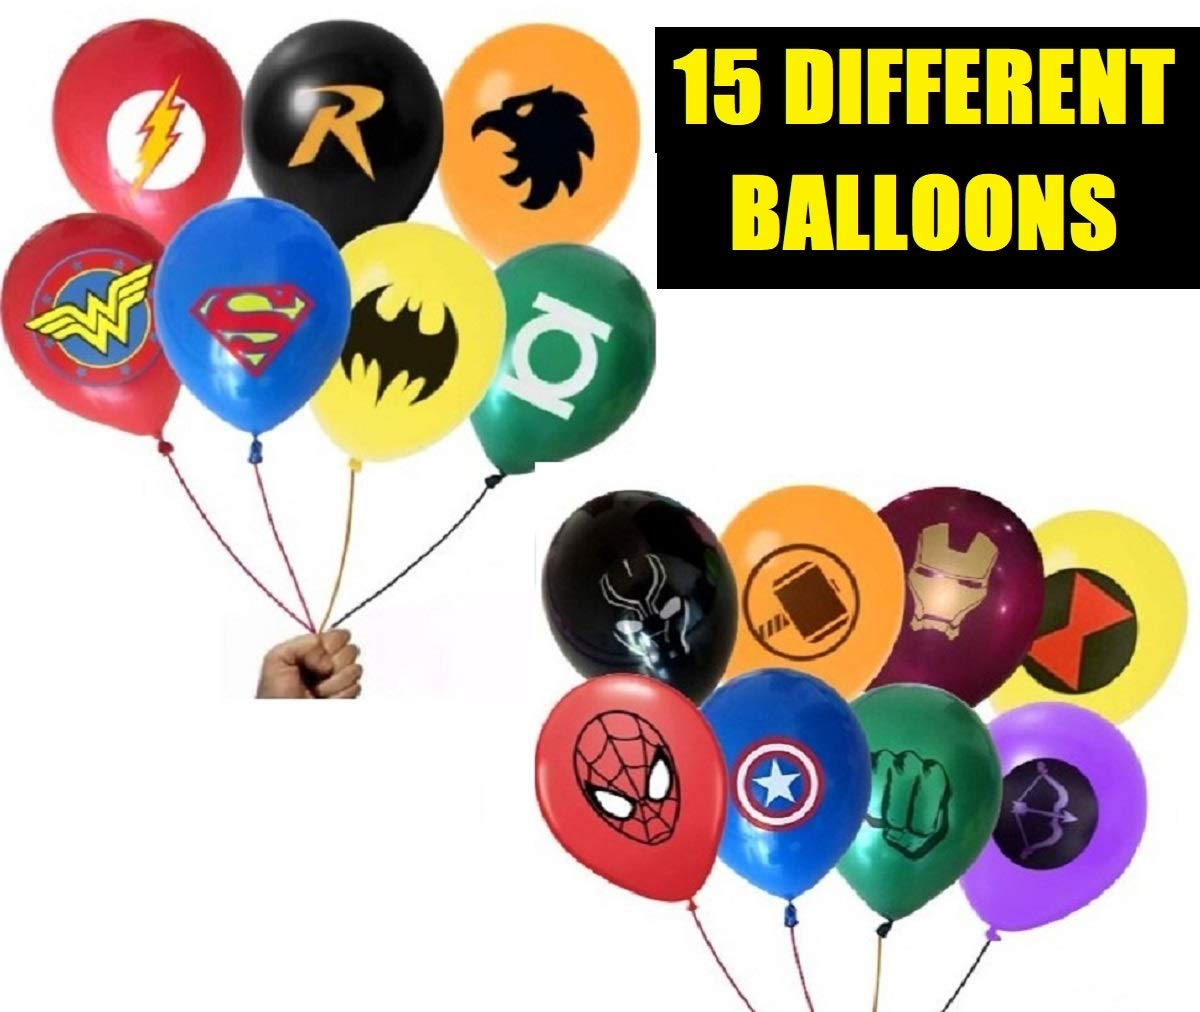 FAT CAT SALES SUPERHERO JUSTICE LEAGUE DC AVENGER BALLOON BUNDLE 15 pcs